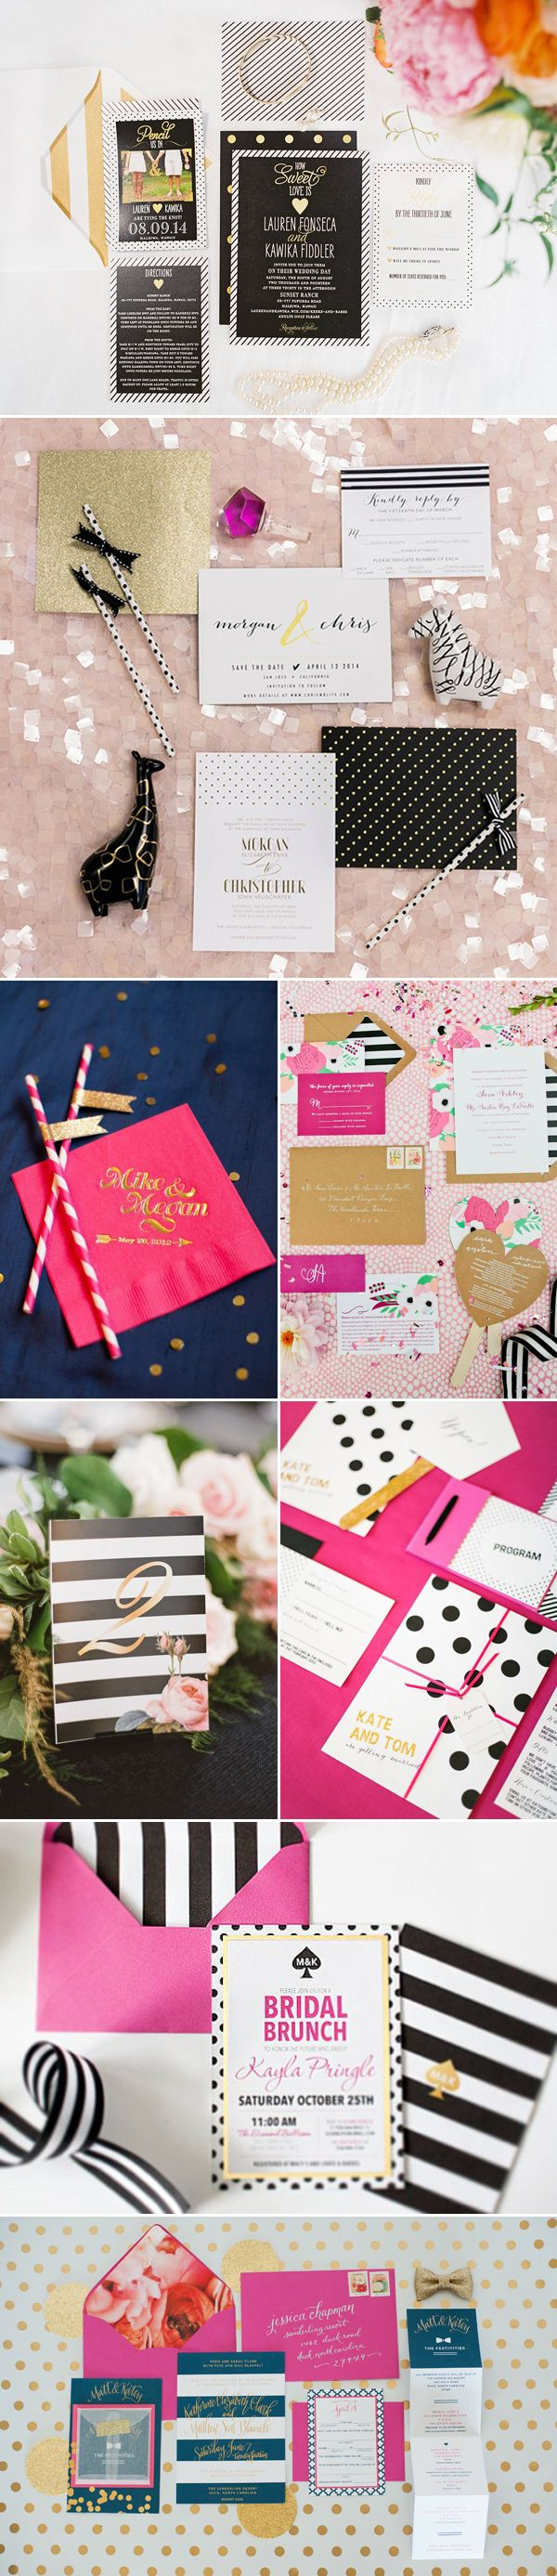 127 Best Kate Spade Inspired Party Decor Images On Pinterest Party